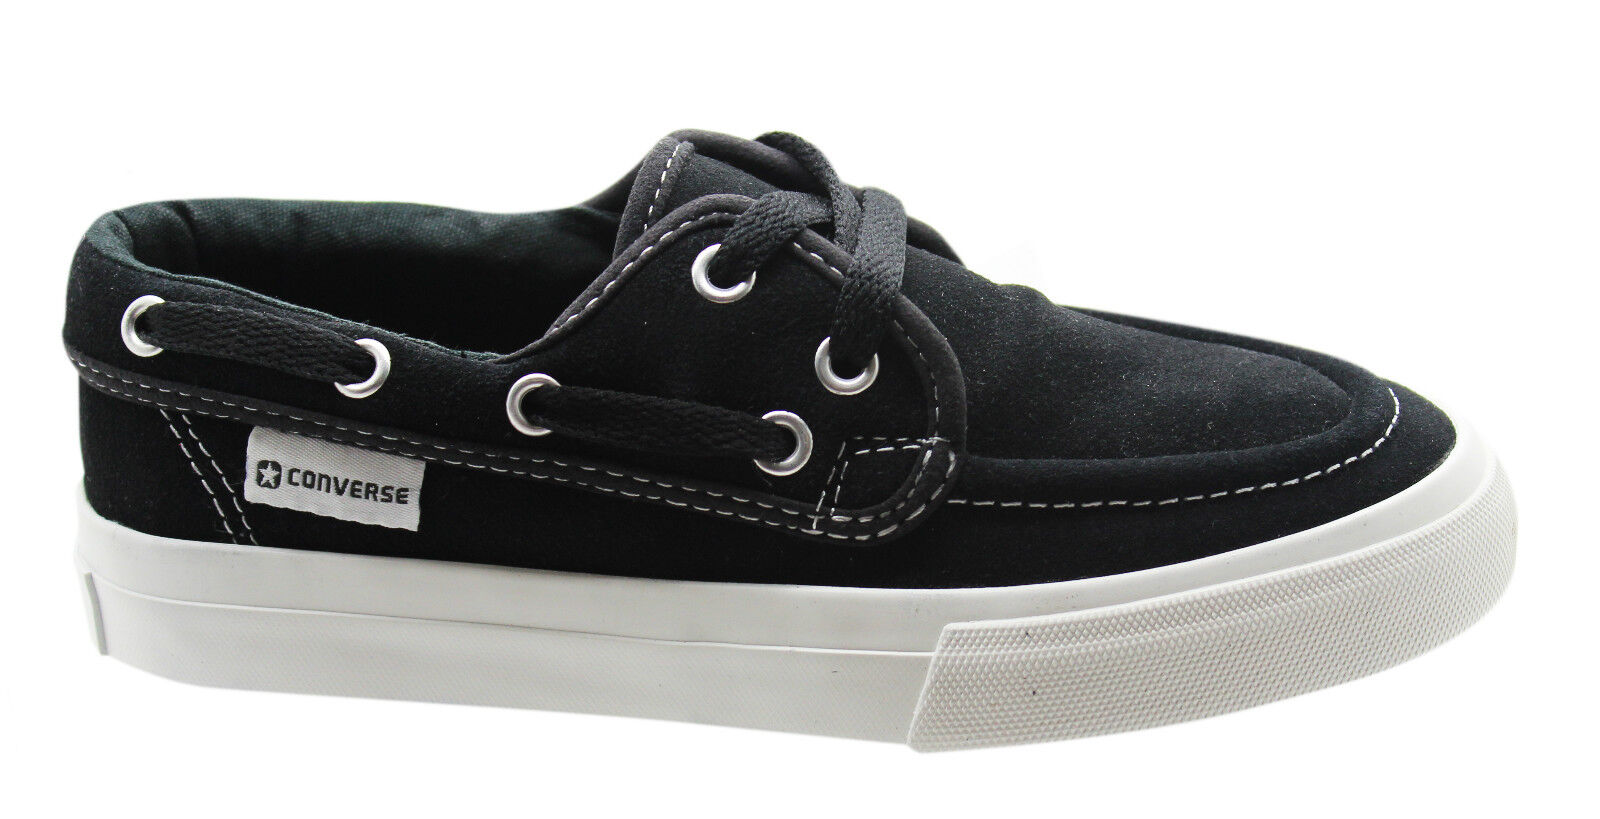 4d85e24ec421 Converse Sea Star OX Mens Boat Shoe Trainers Black Suede Lace Up ...